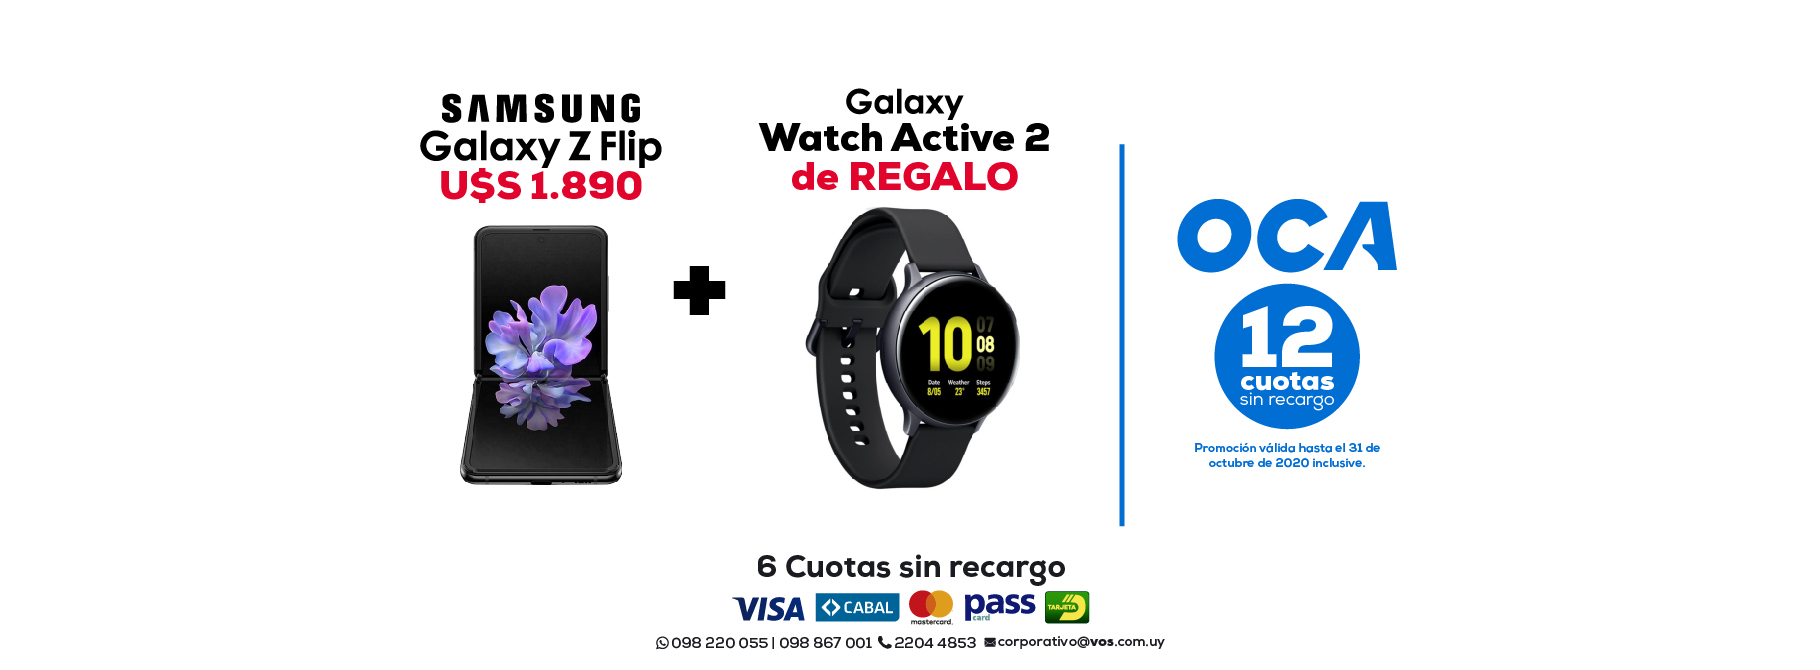 Samsung Z Flip + Watch Active 2 de Regalo